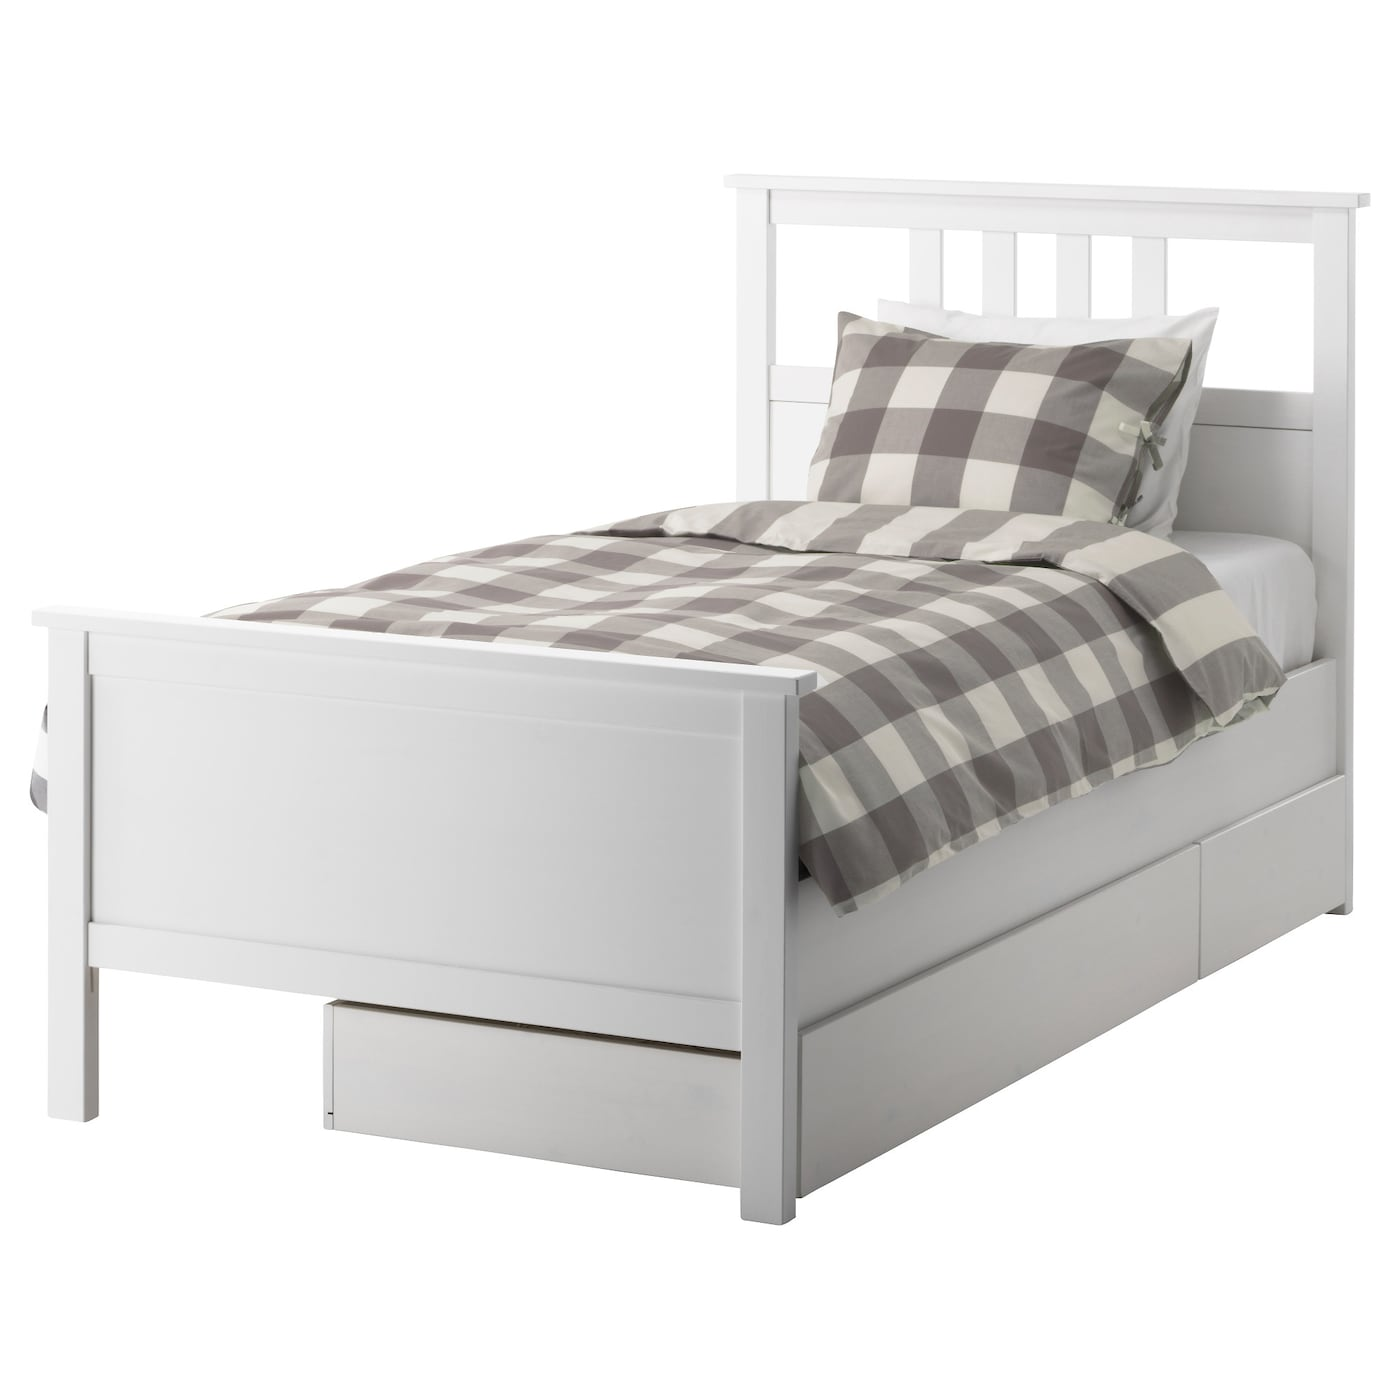 Hemnes Bed Frame With 2 Storage Boxes White Stain Lur Y